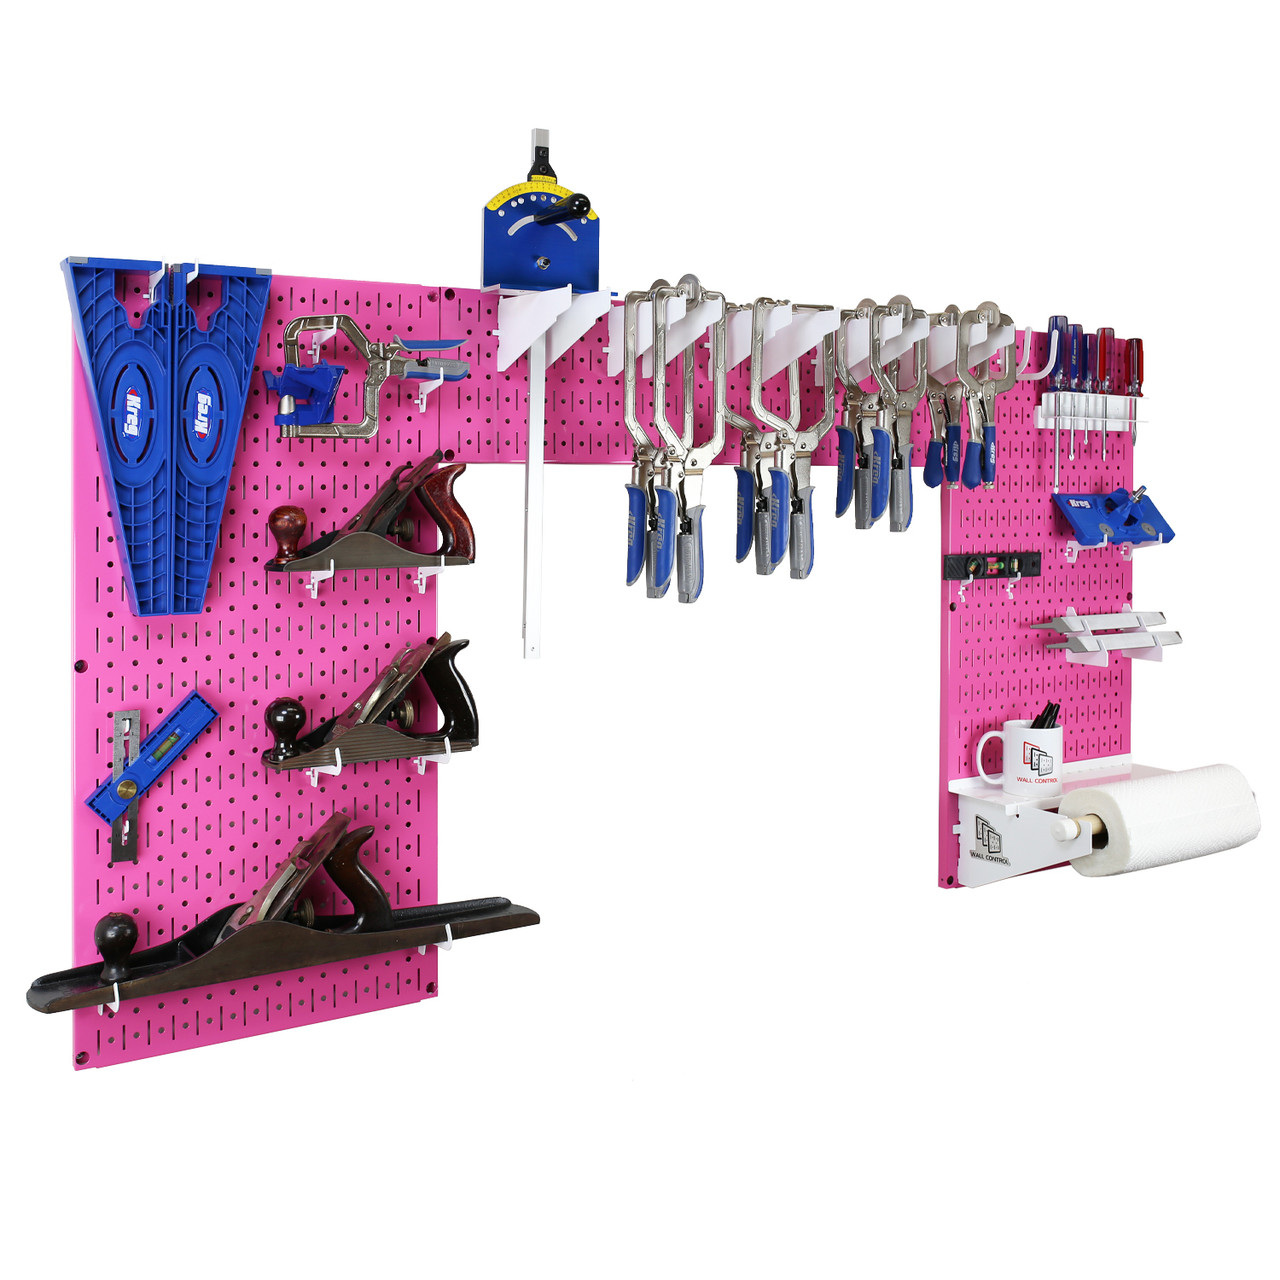 Lazy Guy Diy Maker Woodworking Tool Storage Organizer Set Pink Metal Pegboard With Accessories